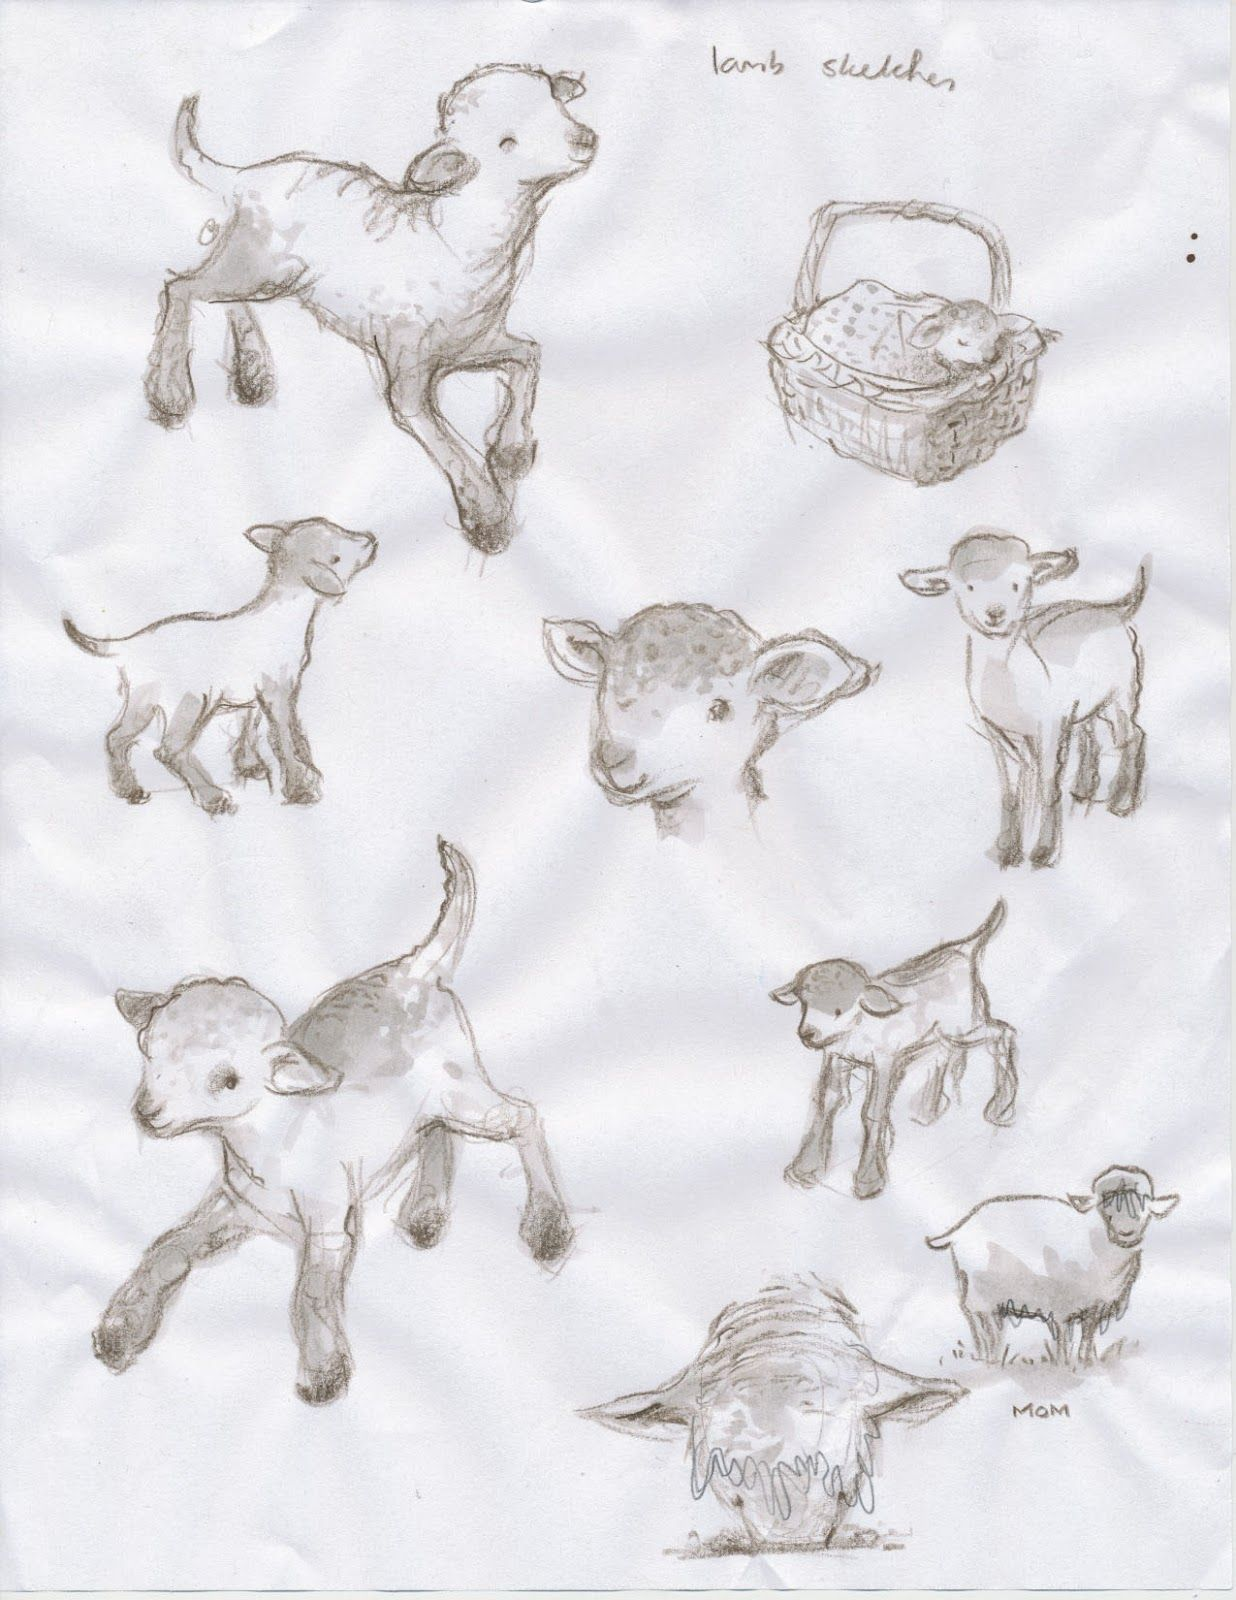 Baby Lamb Drawing Lamb Sketches Images Paperwork February 2012 Tattoo